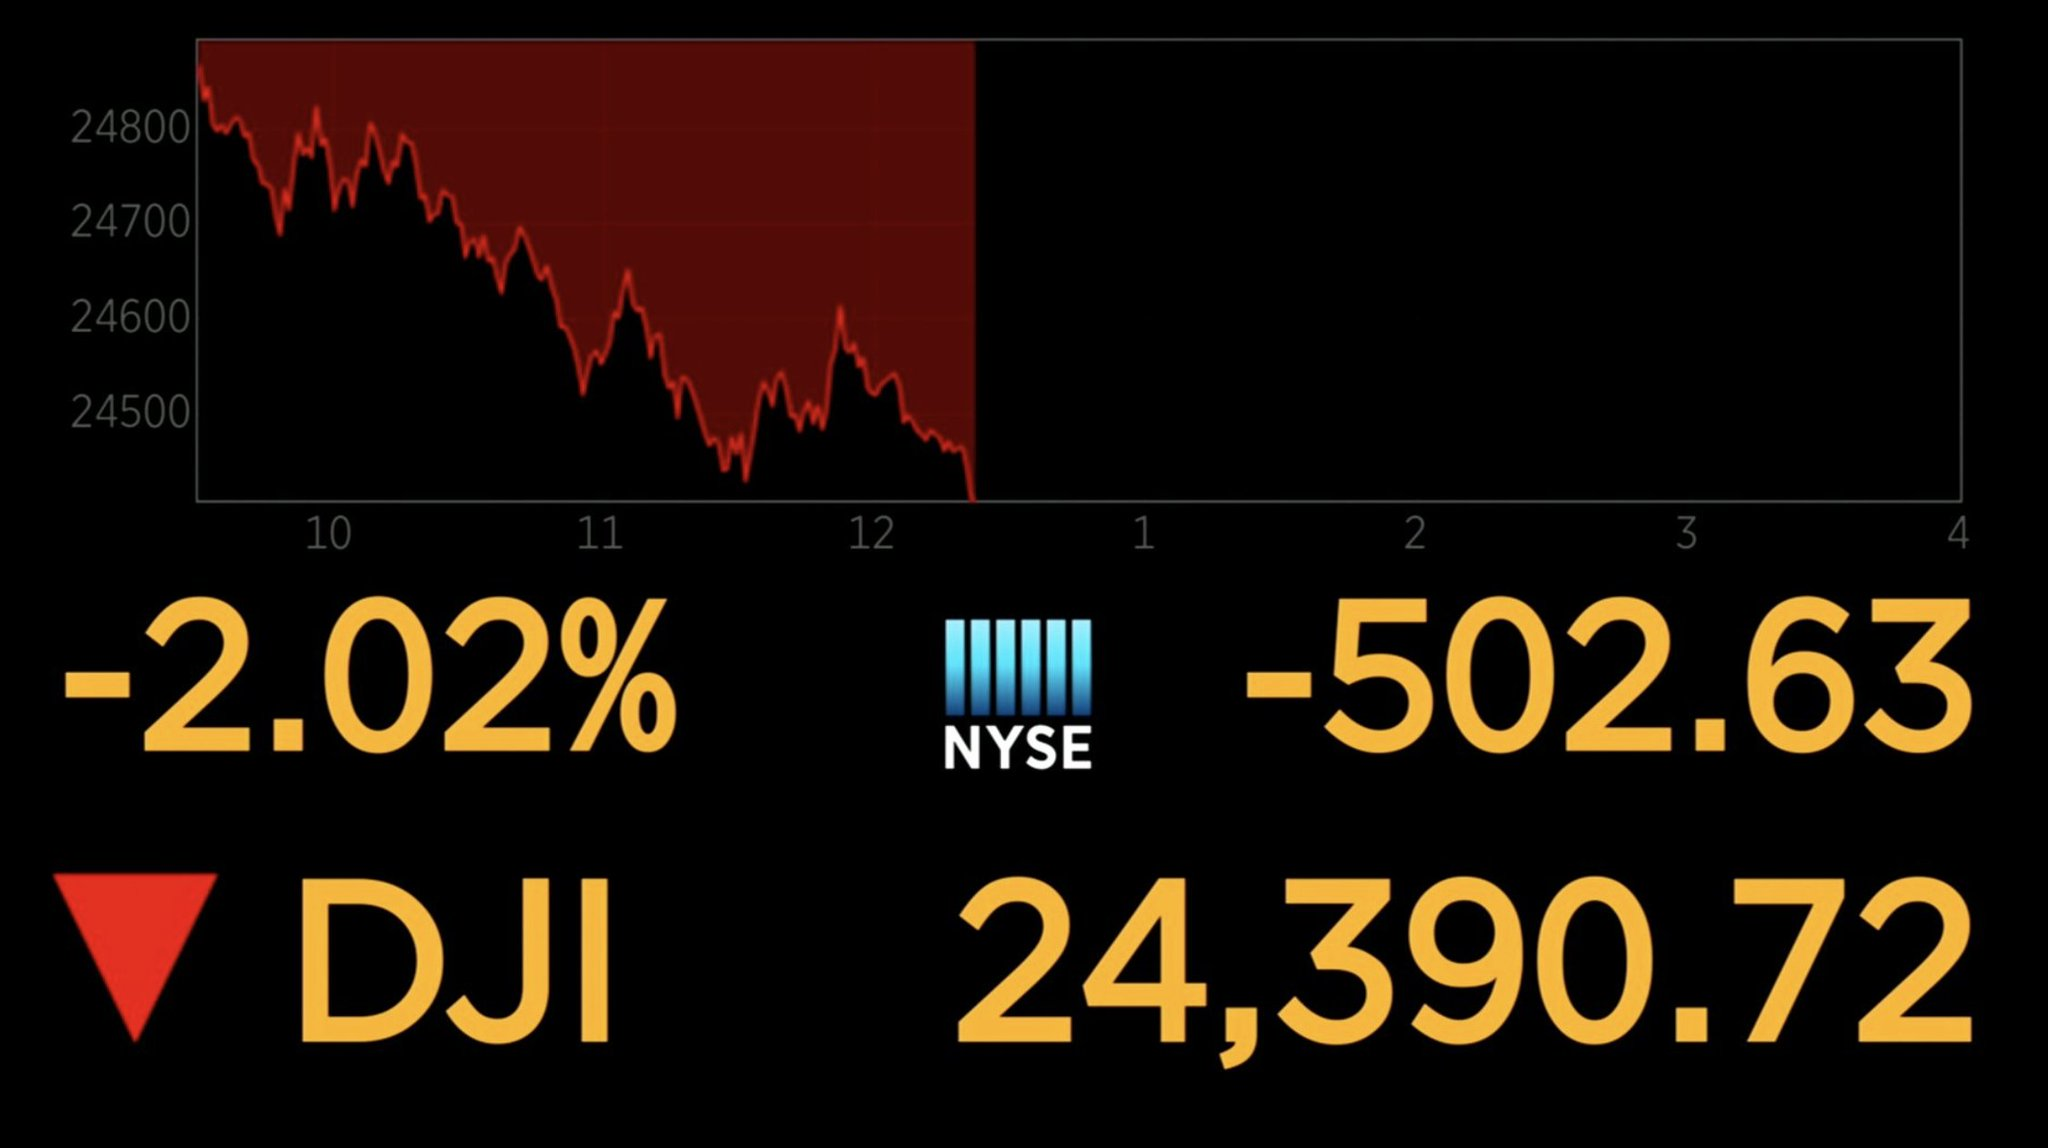 Dow falls more than 500 points https://t.co/Z4AWYR9nAv